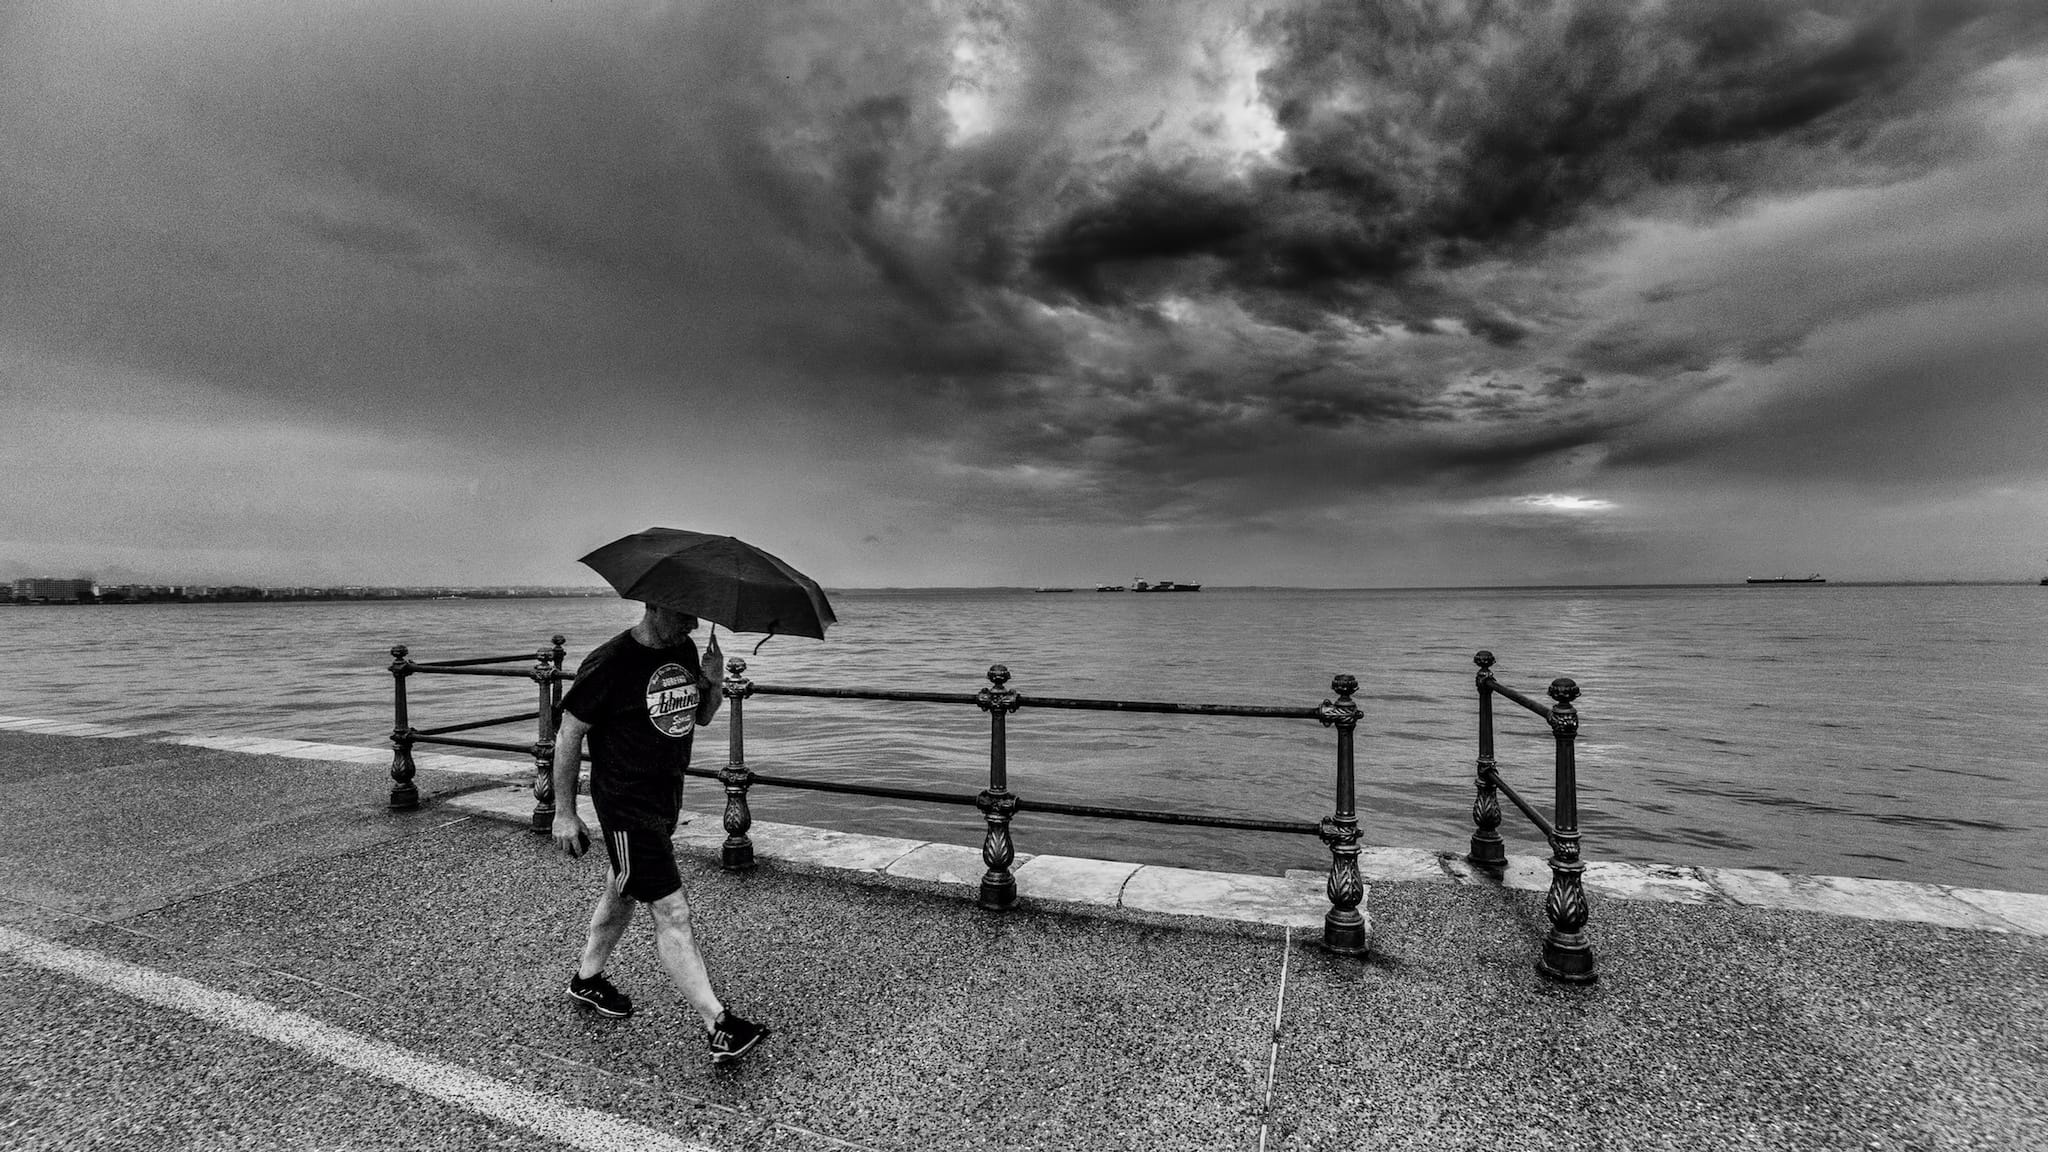 """""""Stormy weather"""" by Yiannis Yiasaris"""